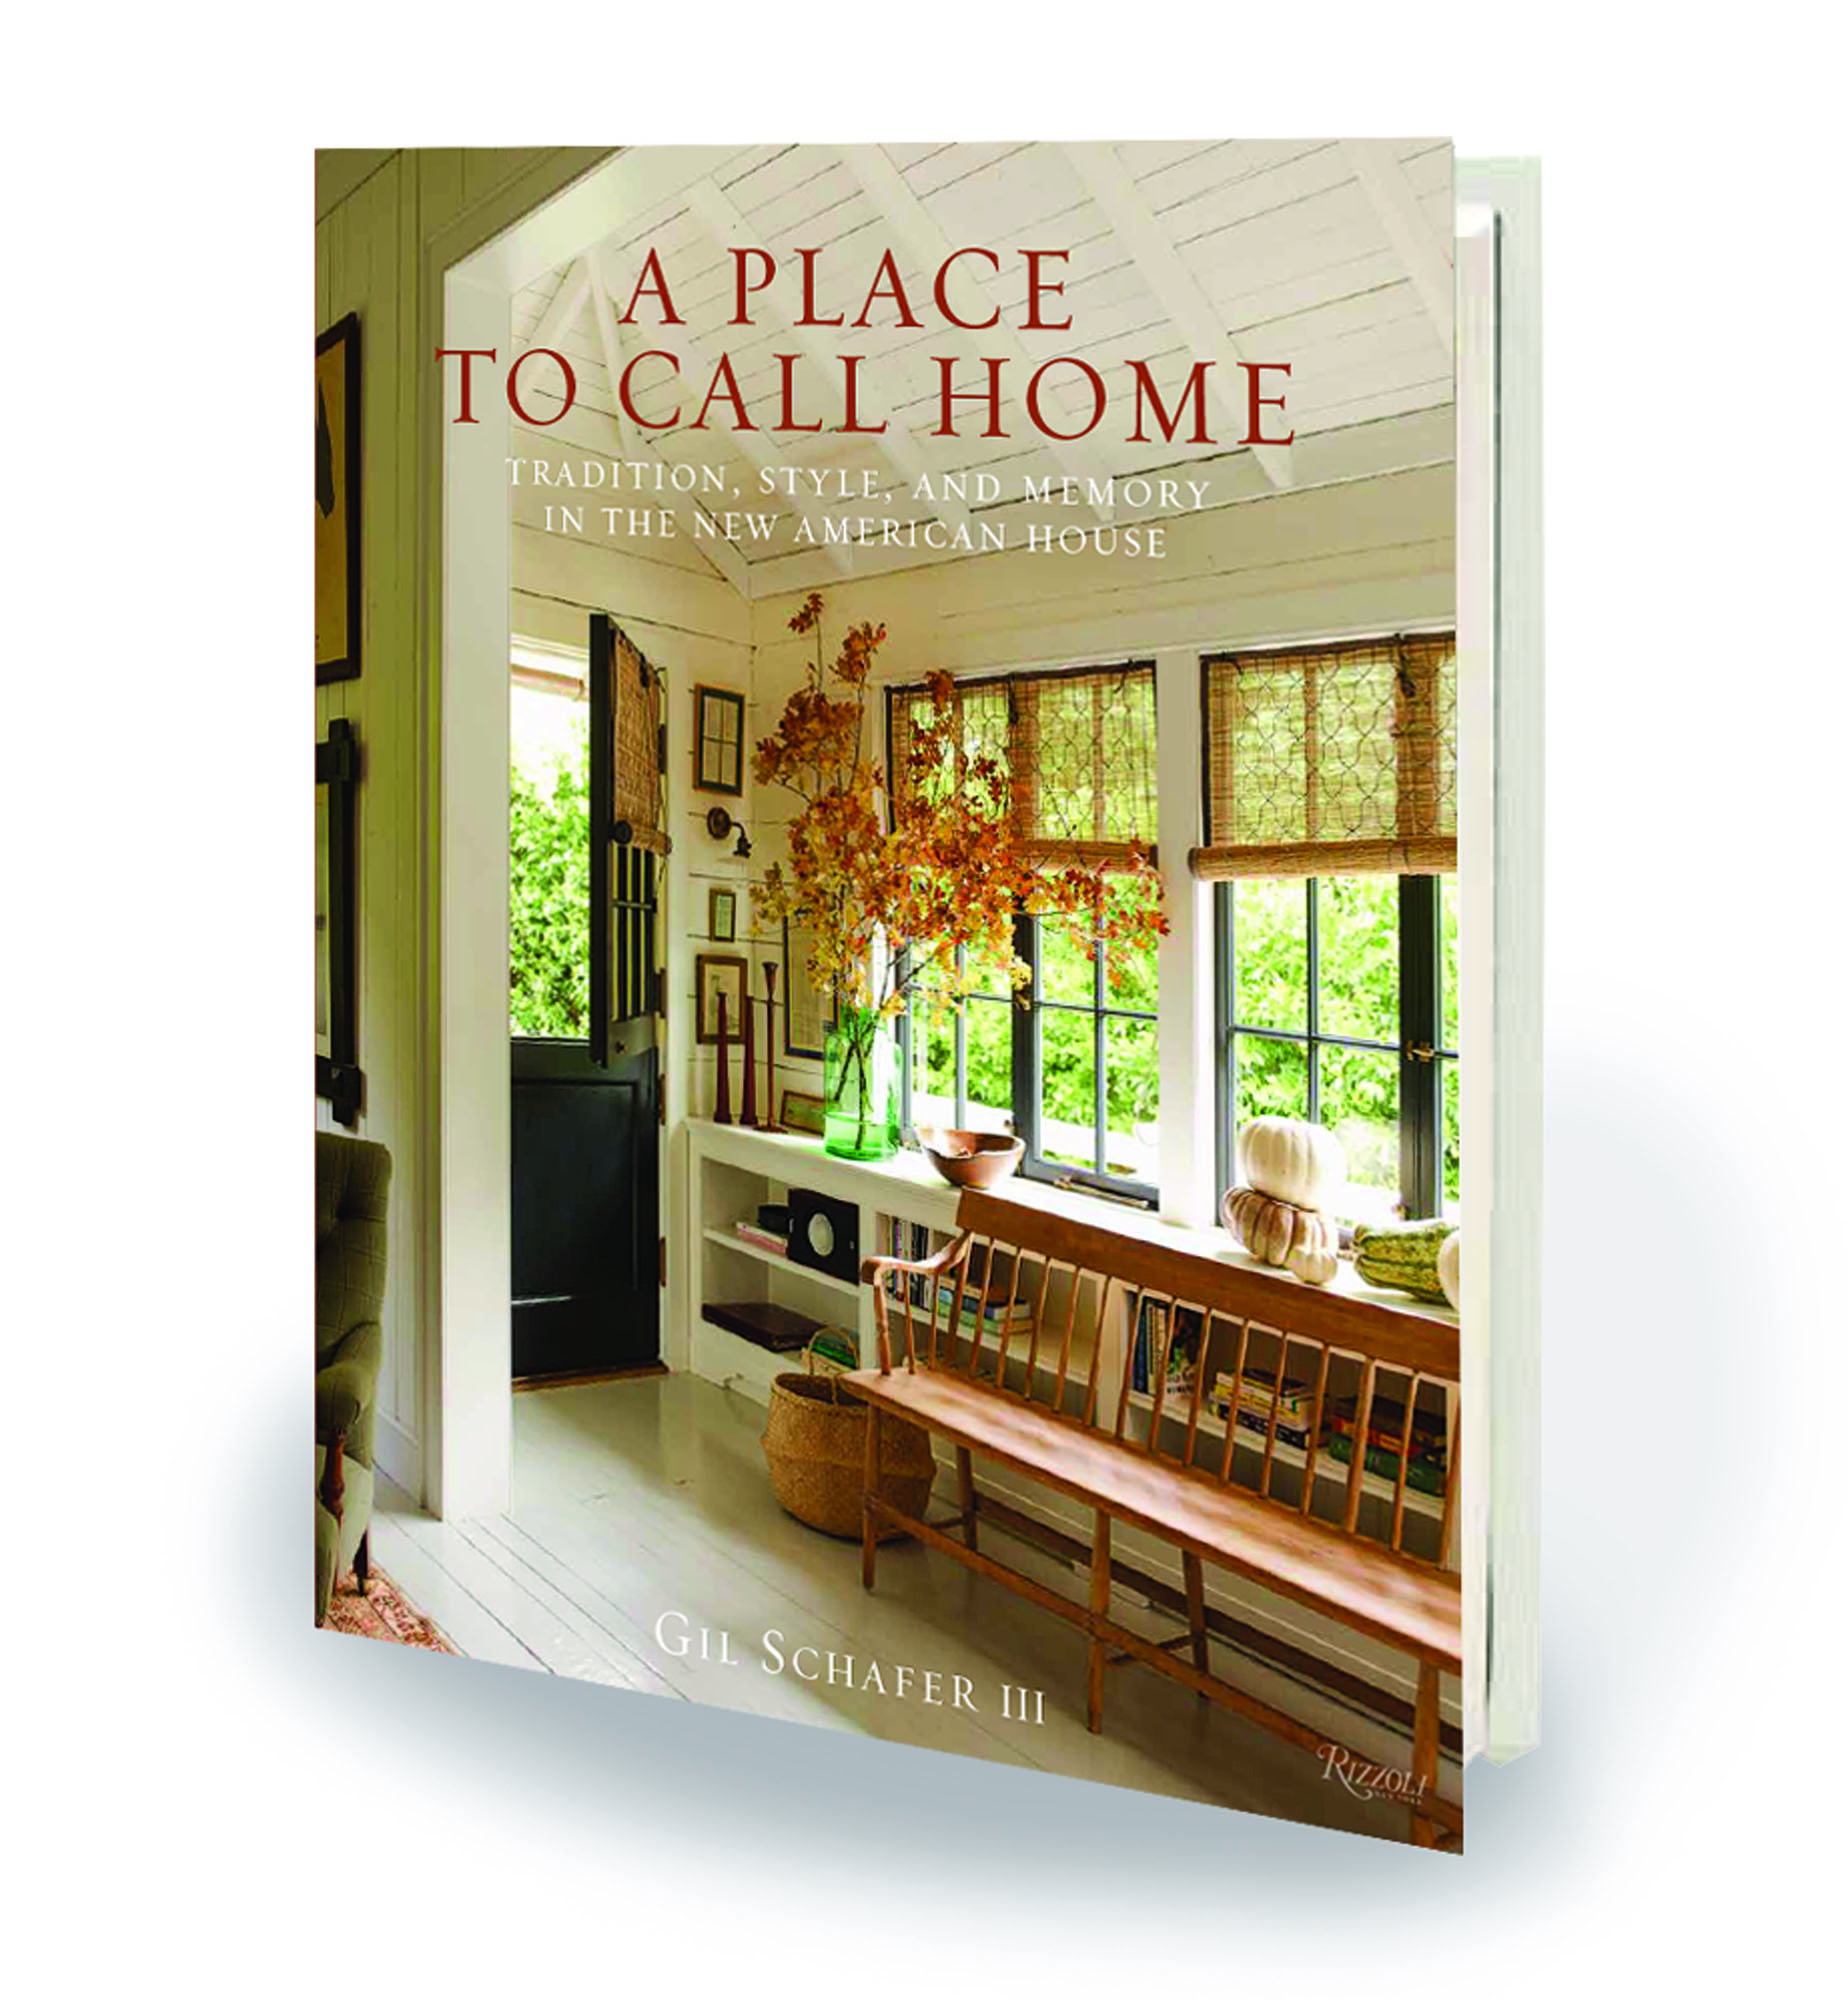 A Place to Call Home: Tradition, Style,  and Memory in the New American House Published by Rizzoli.